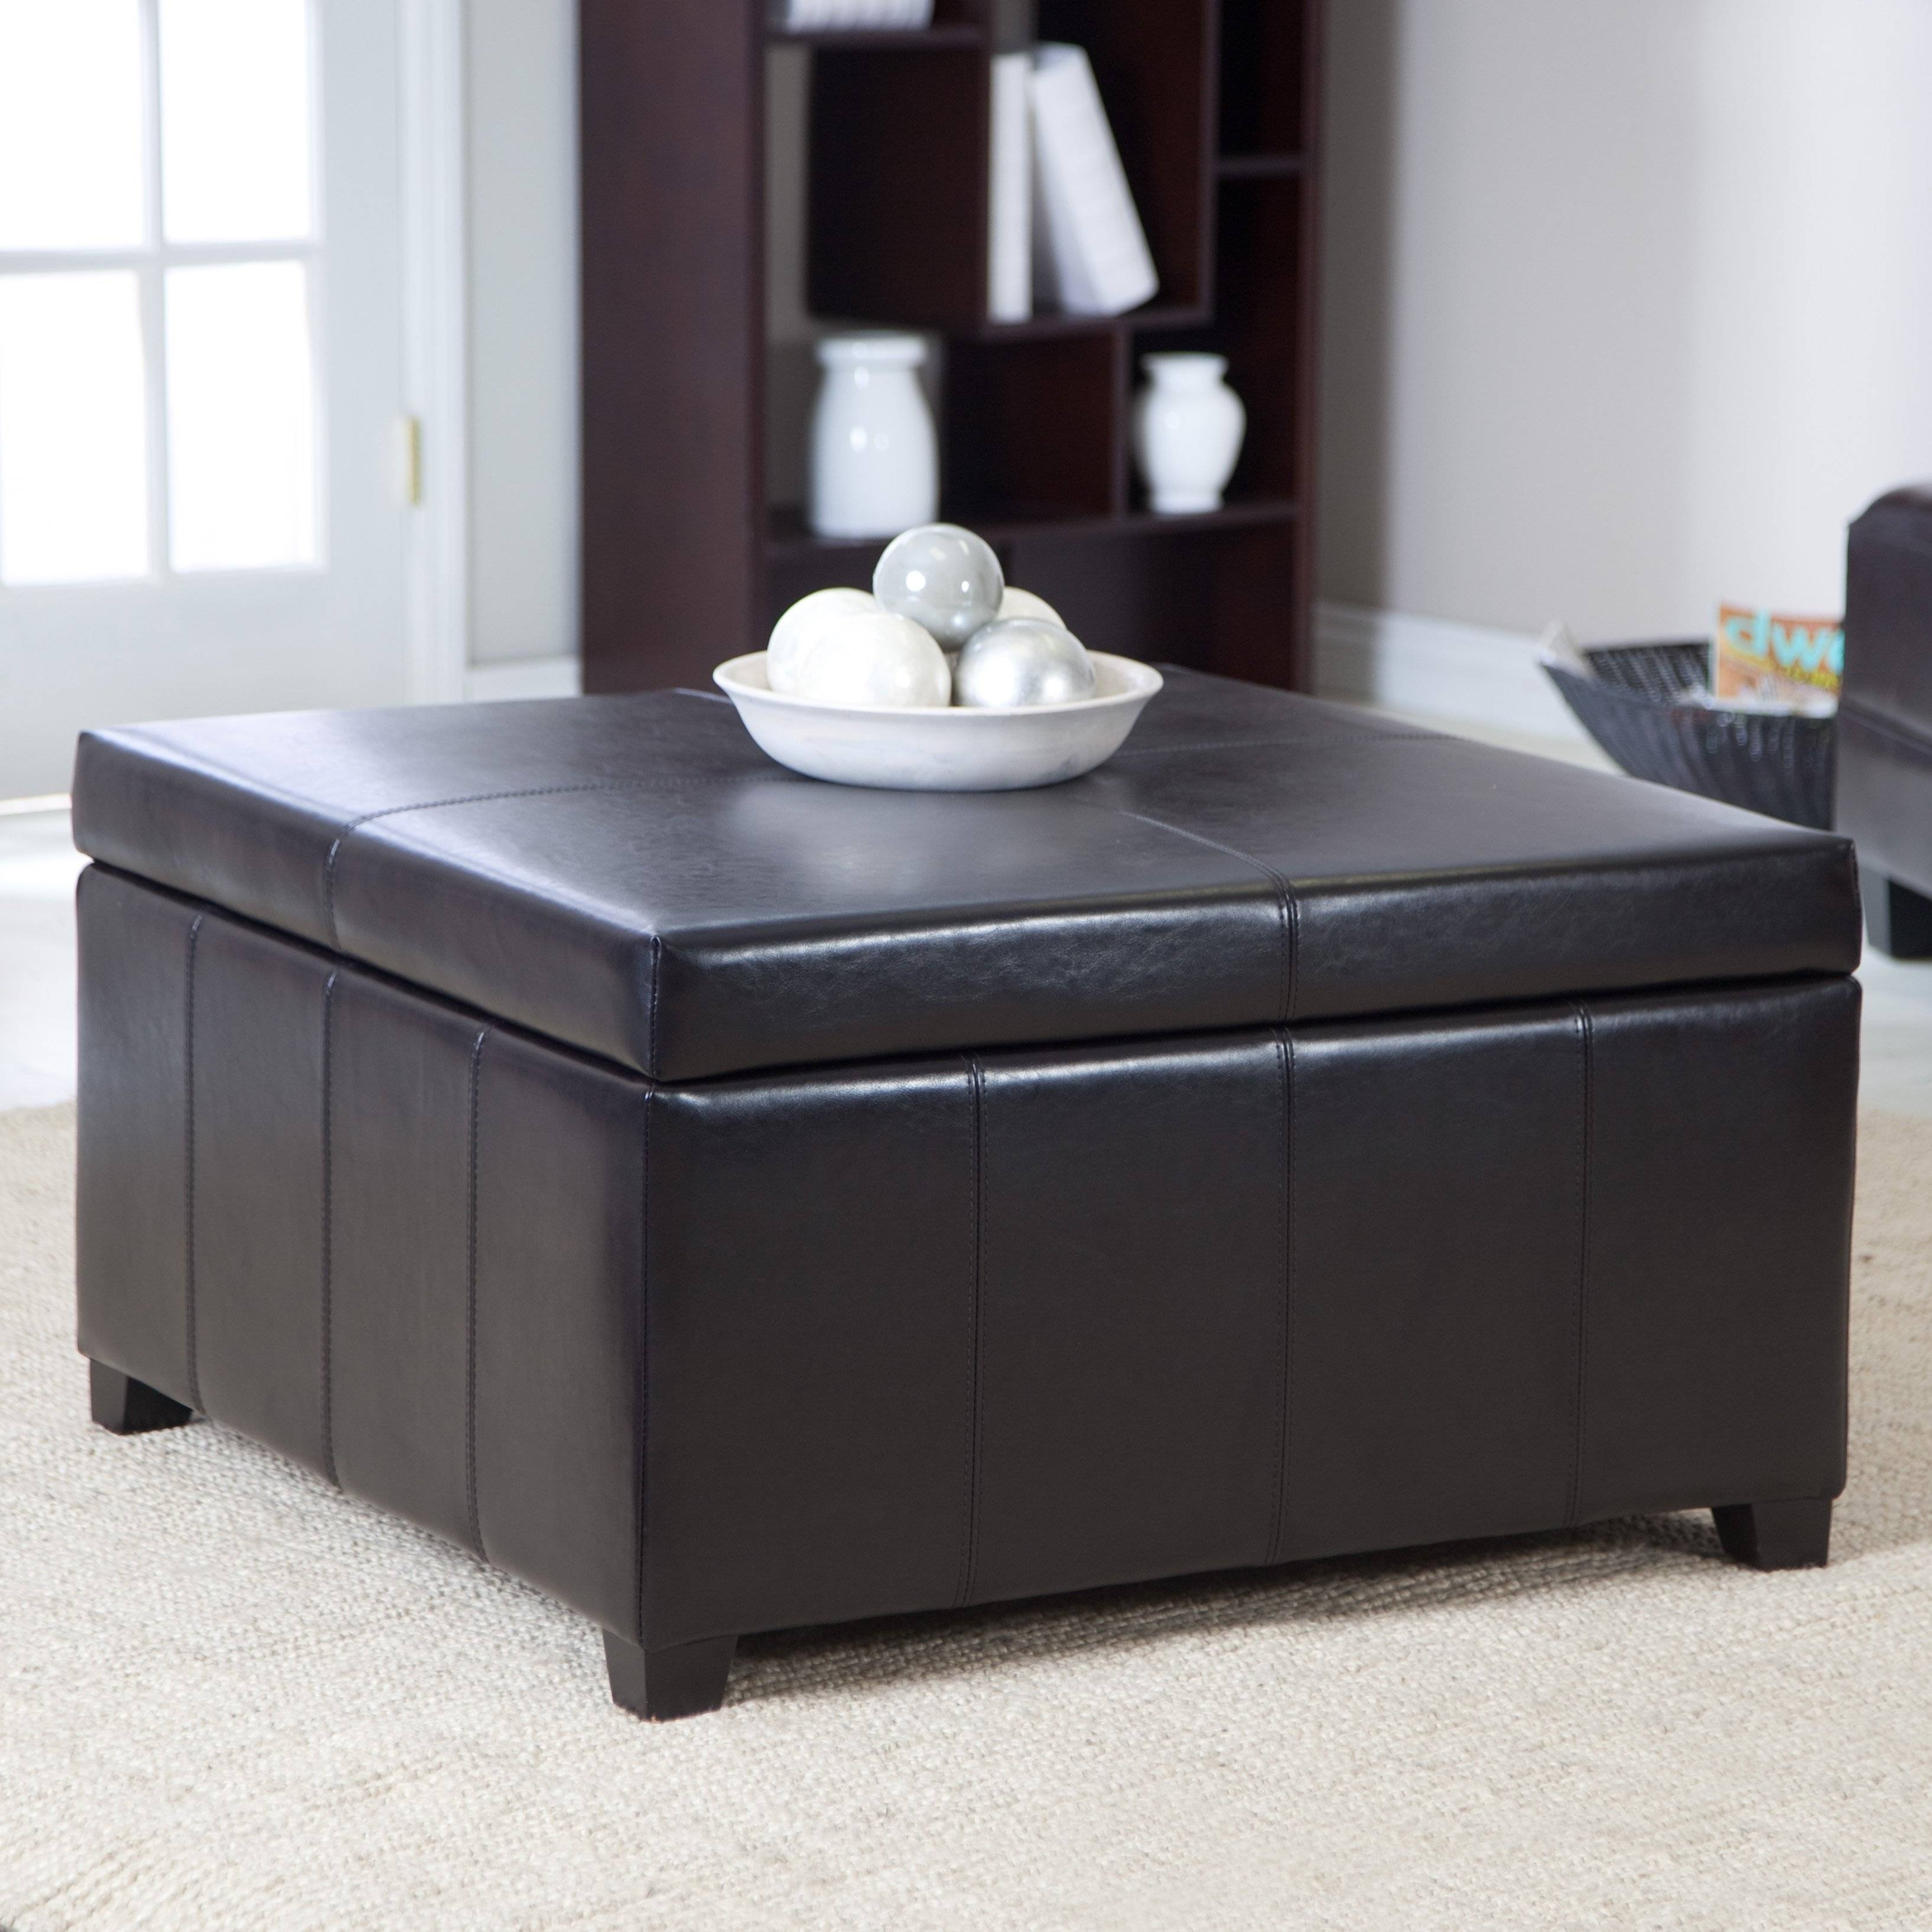 Coffee Table: Appealing Square Storage Ottoman Coffee Table Regarding Brown Leather Ottoman Coffee Tables (View 18 of 30)